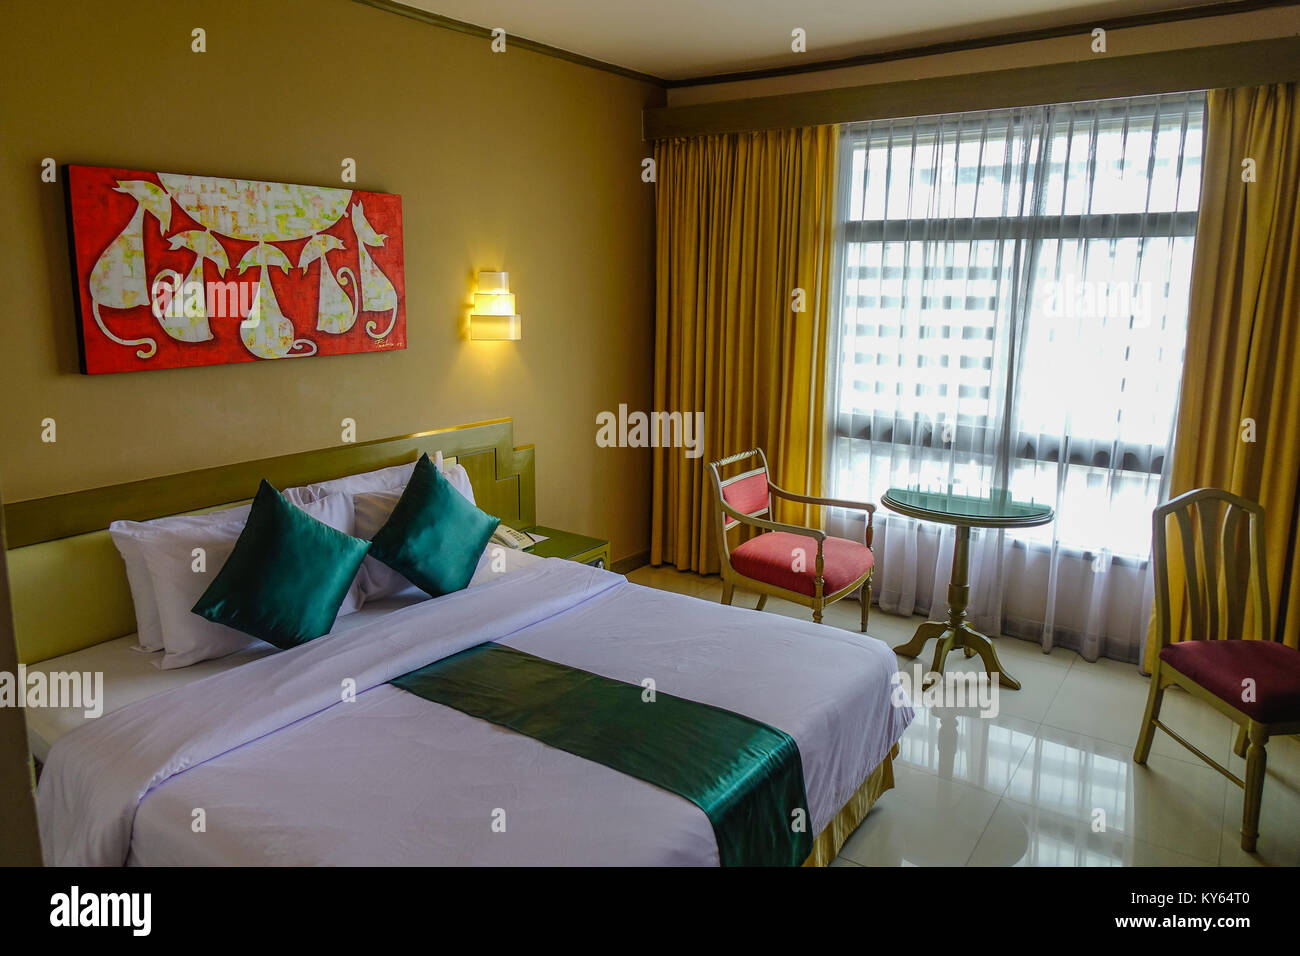 Bangkok thailand jun 18 2017 double bed room of luxury modern hotel in bangkok thailand bangkok is the capital and largest city in thailand